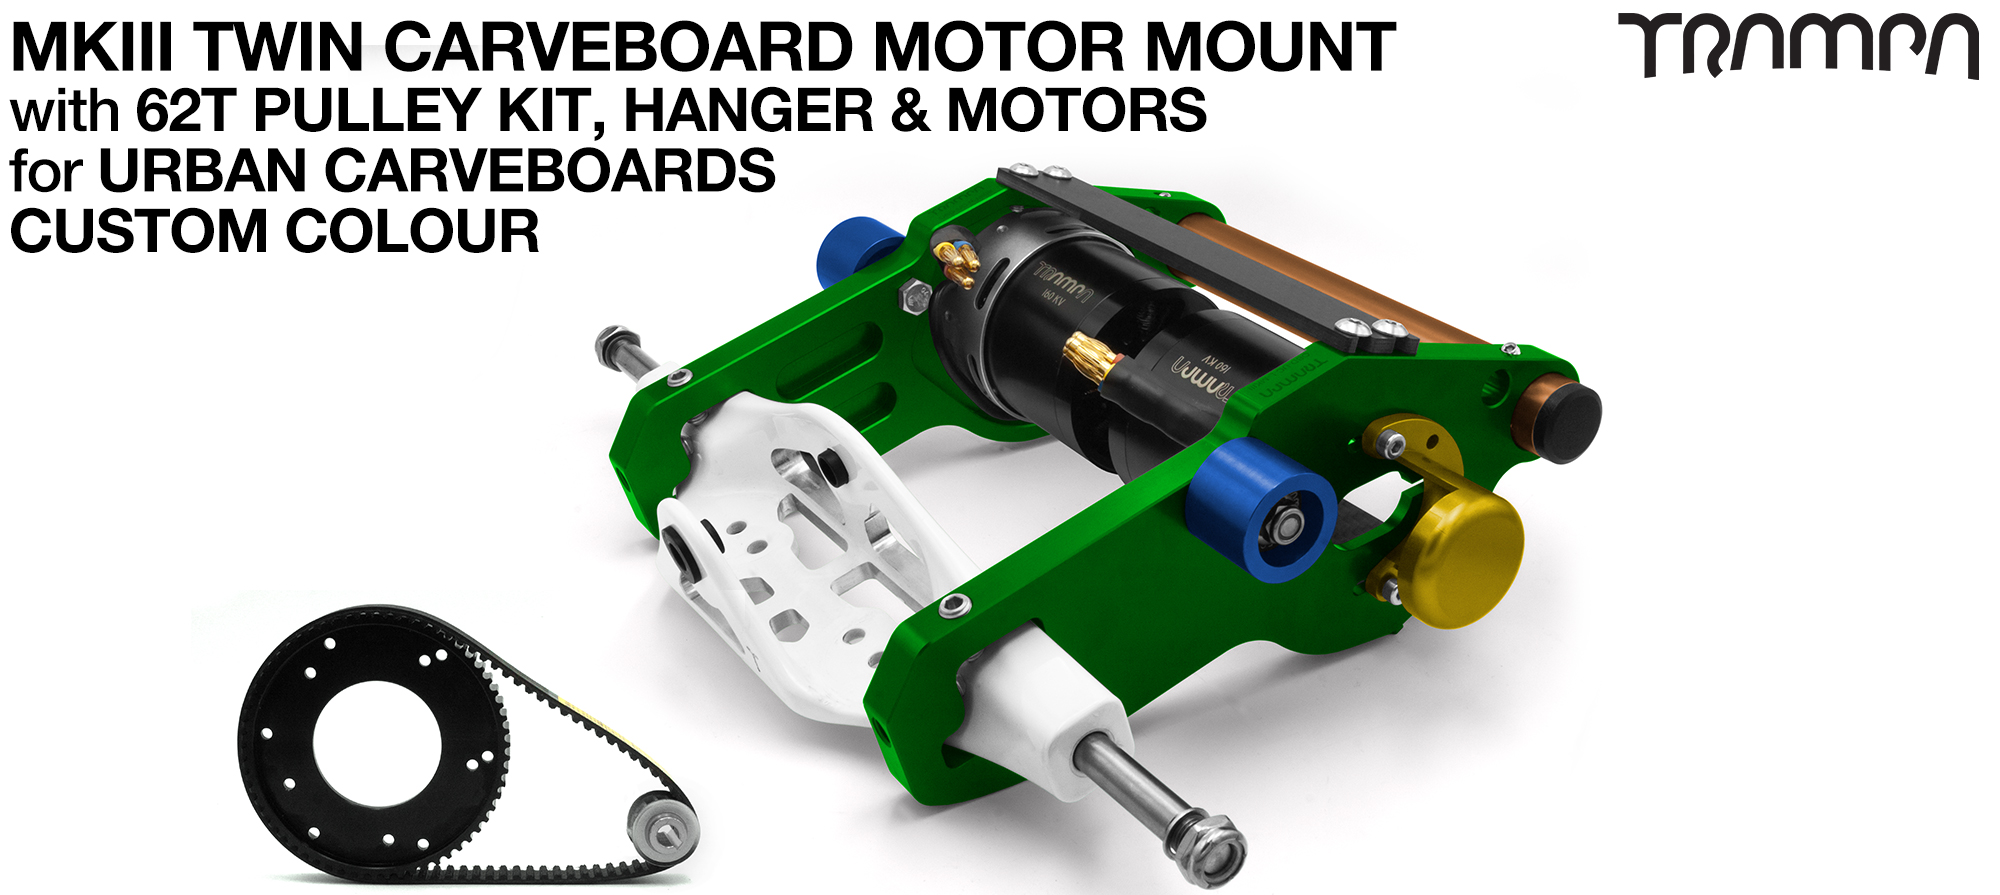 MkIII URBAN CARVEBOARD Motor mount Connector Panel on a HANGER with 44 Tooth Pulley Kit & Motor - TWIN